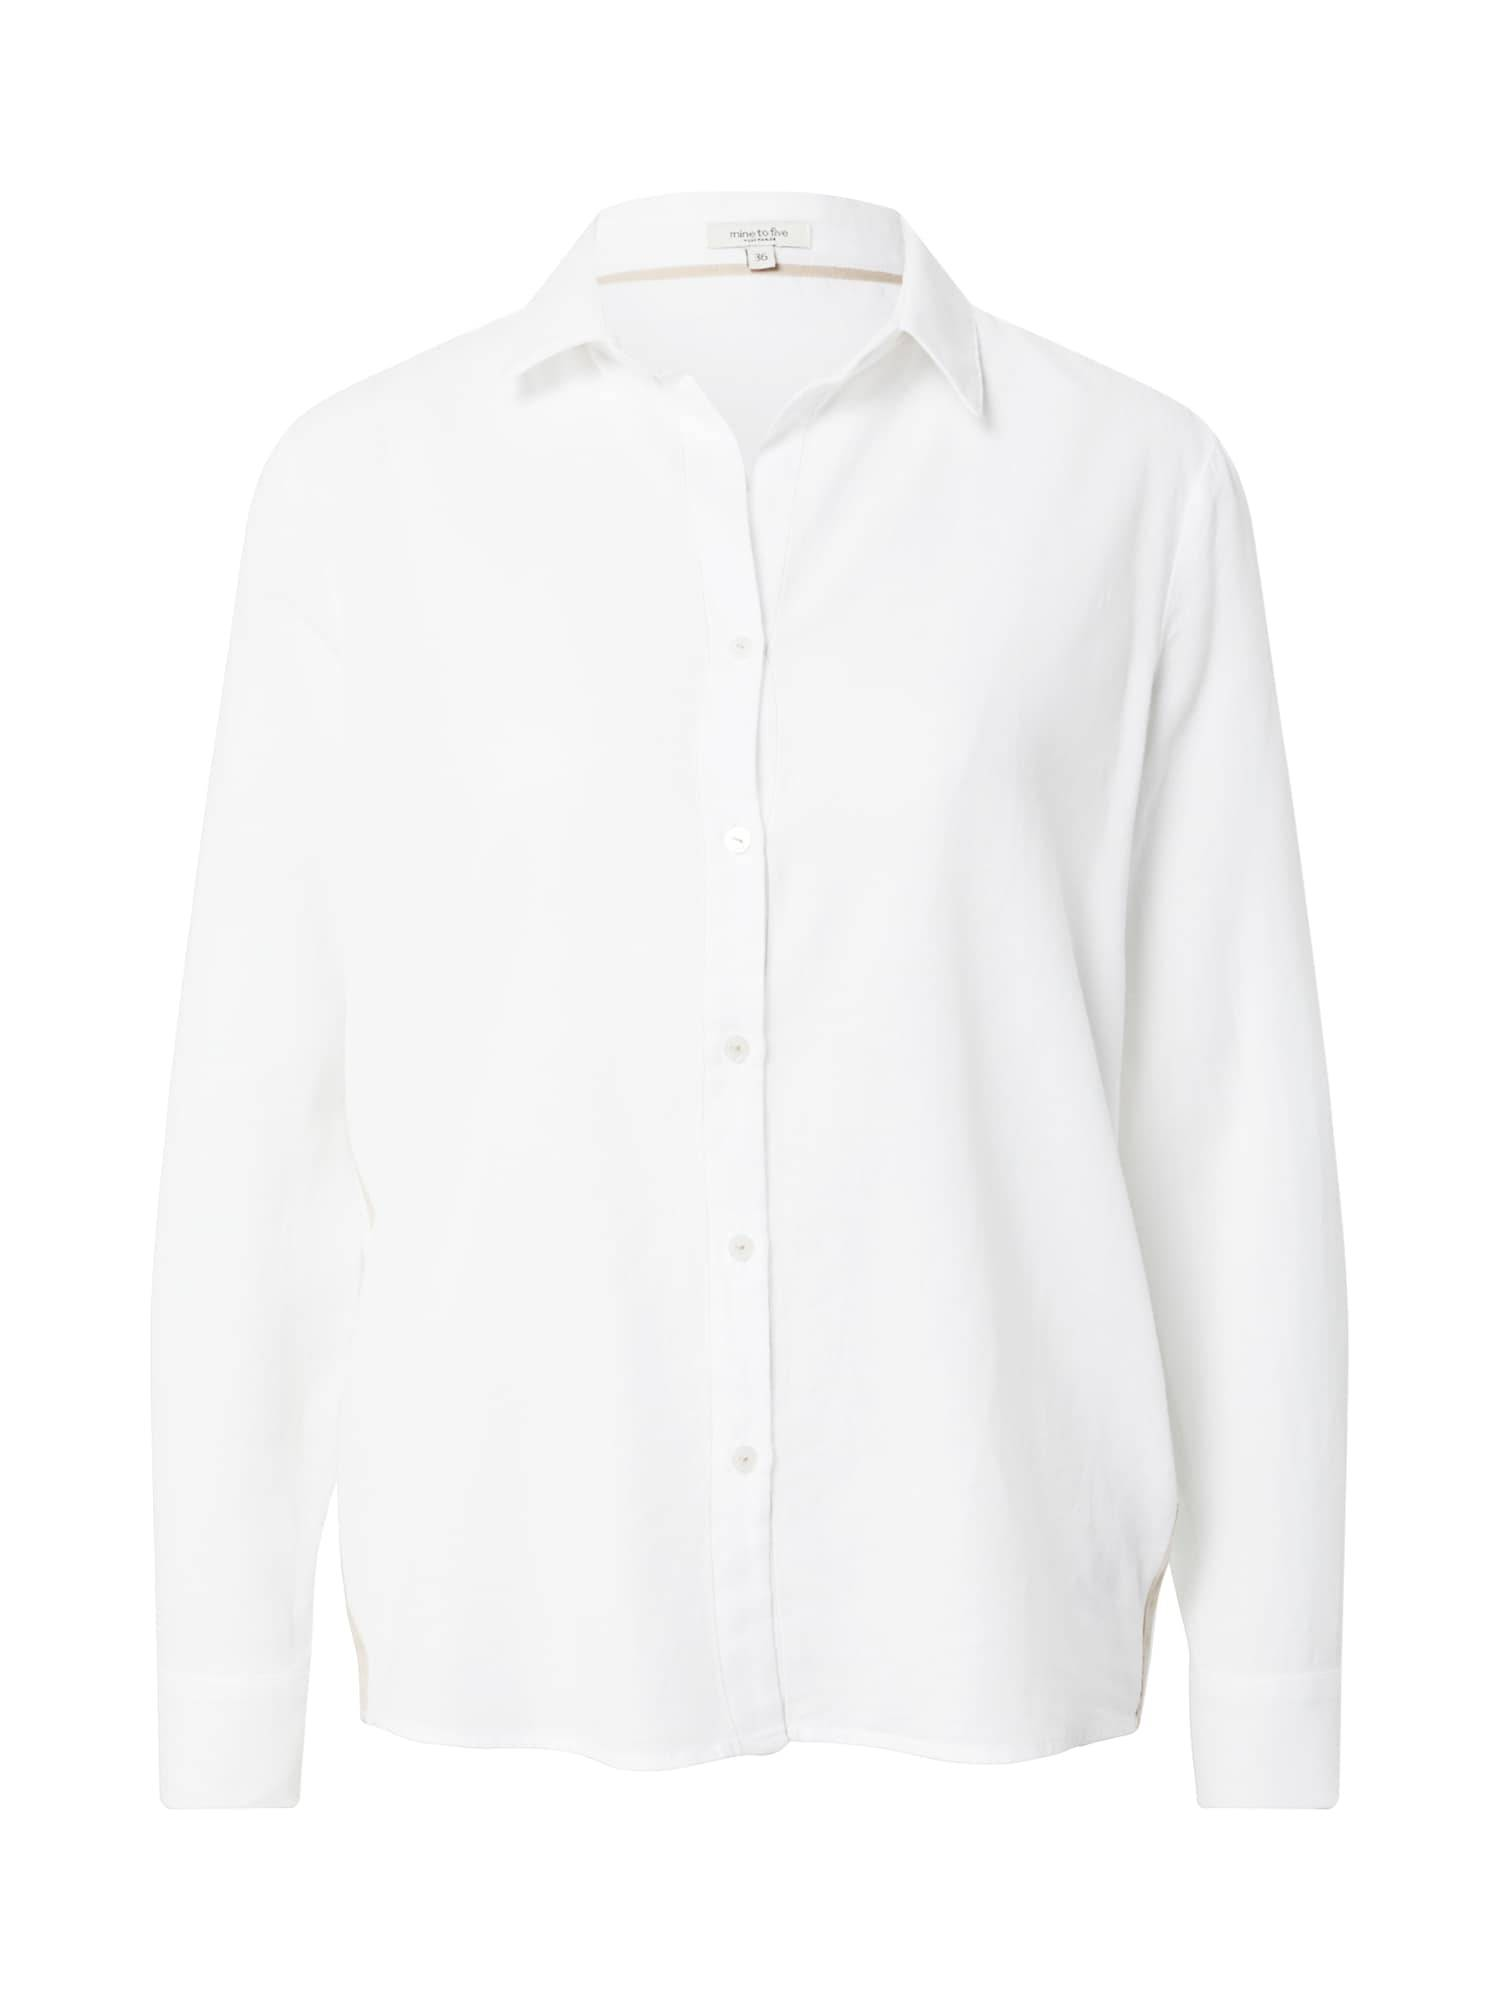 MINE TO FIVE Chemisier  - Blanc - Taille: 40 - female